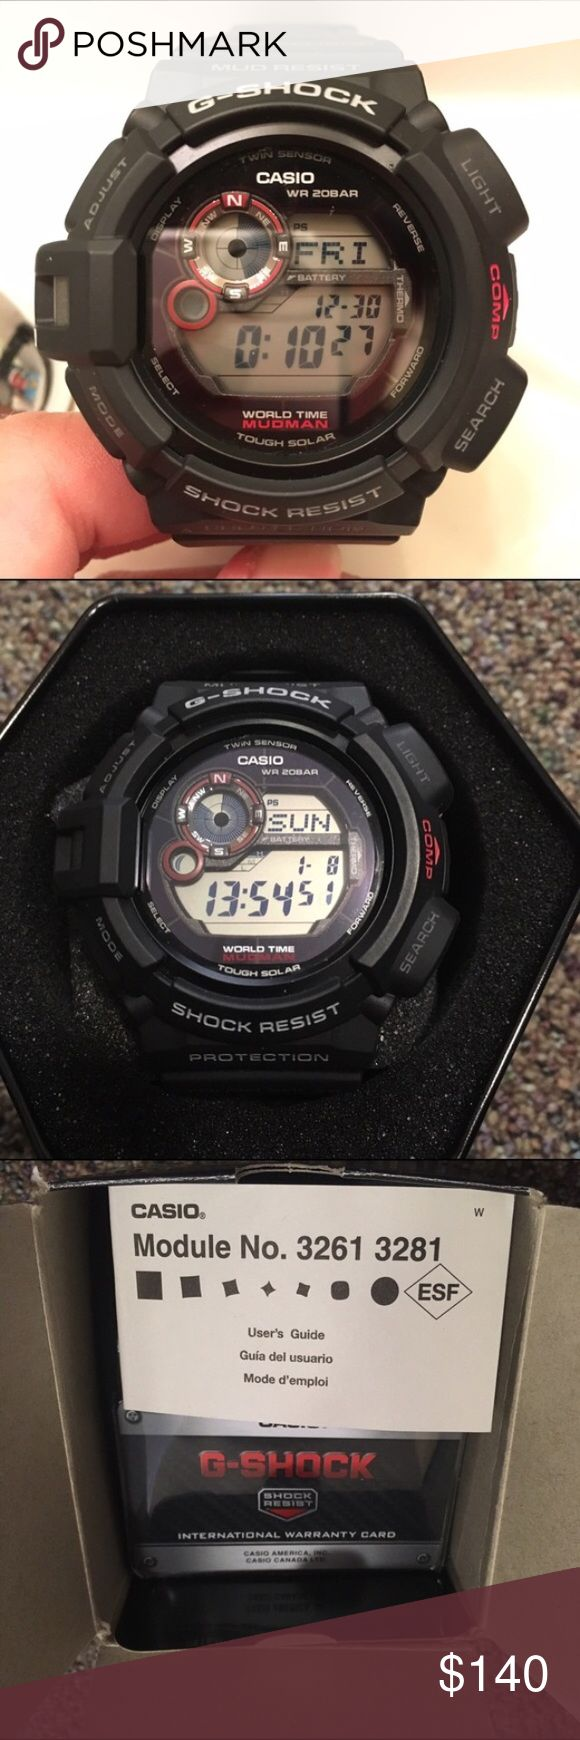 Casio G-Shock Mudman Watch Almost new (with original box, tag, and instructions) Mudman digital men's watch model G-9300-1. Worn about 3 times tops so listed as NWT (sorry!). No wear and tear or any marks like I said it's basically brand new. The only reason I'm selling is because it's too big for me! [Case diameter: 48mm - Case thickness: 17mm - Band width: 26mm - Weight: 2.40oz] Price is firm sorry! (This is also from an old listing that was bought and cancelled) Casio Accessories Watches